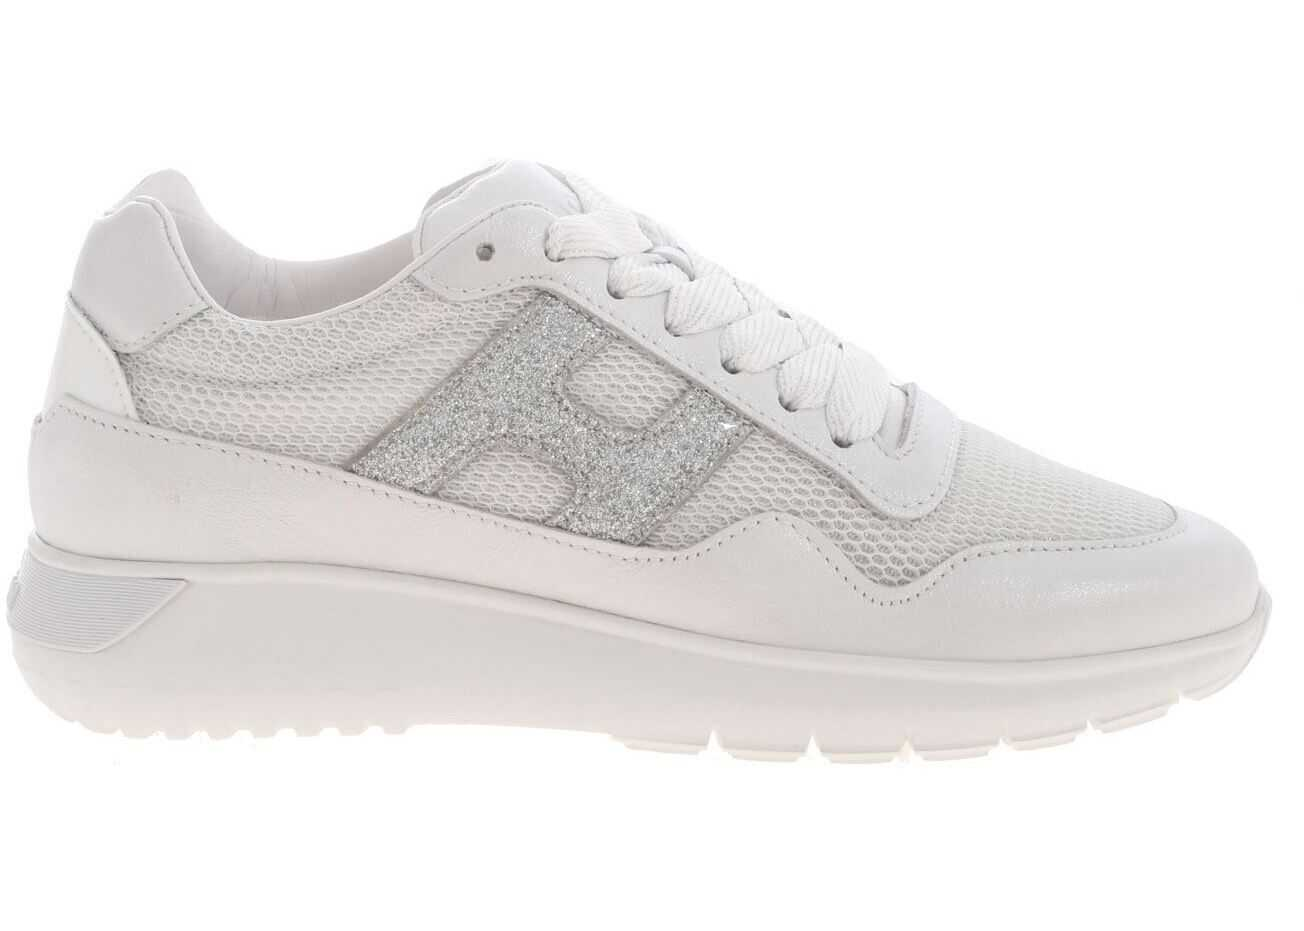 Hogan H371 Interactive Sneakers In White White